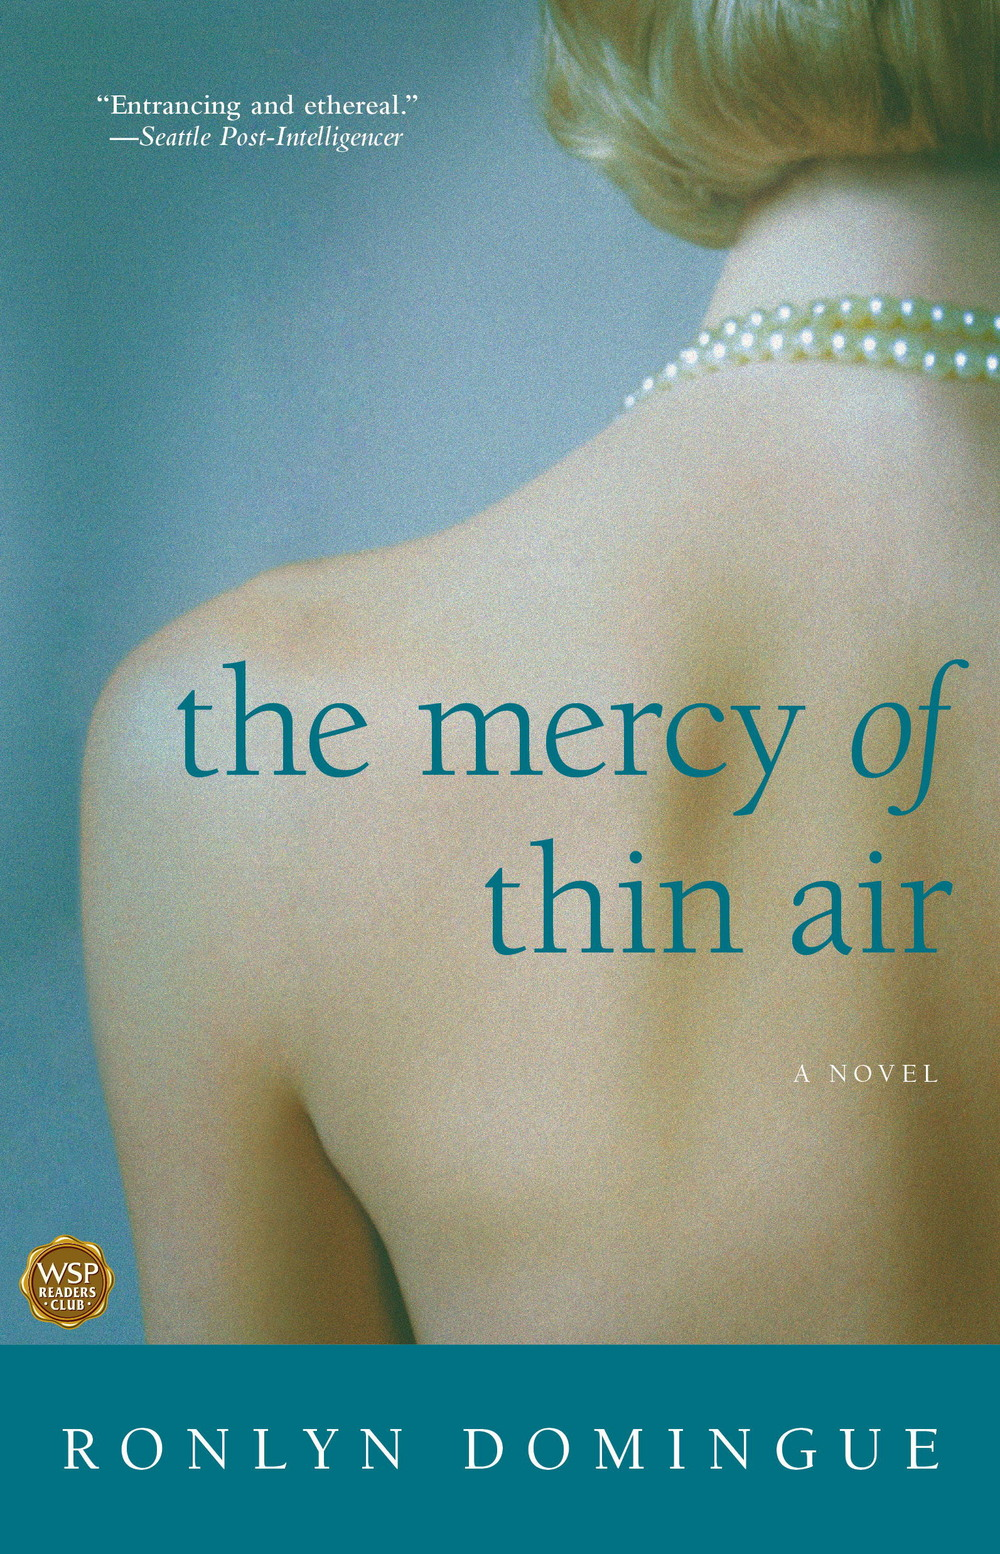 MERCY OF THIN AIR paperback med res.jpg